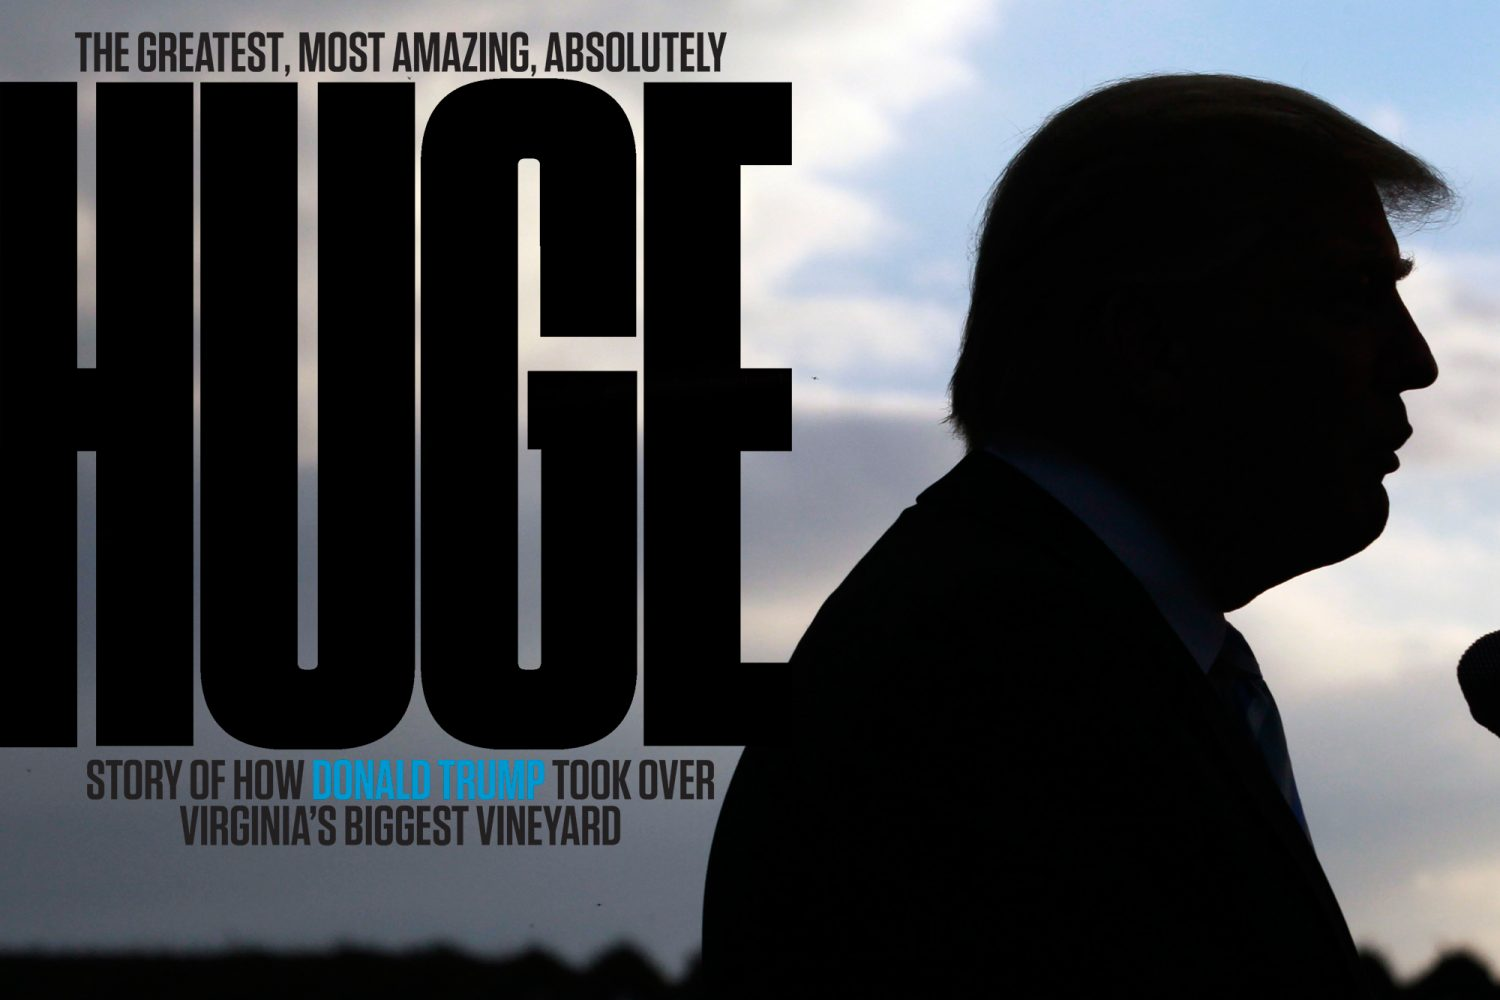 The Greatest, Most Amazing, Absolutely HUGE Story of How Donald Trump Took Over Virginia's Biggest Vineyard